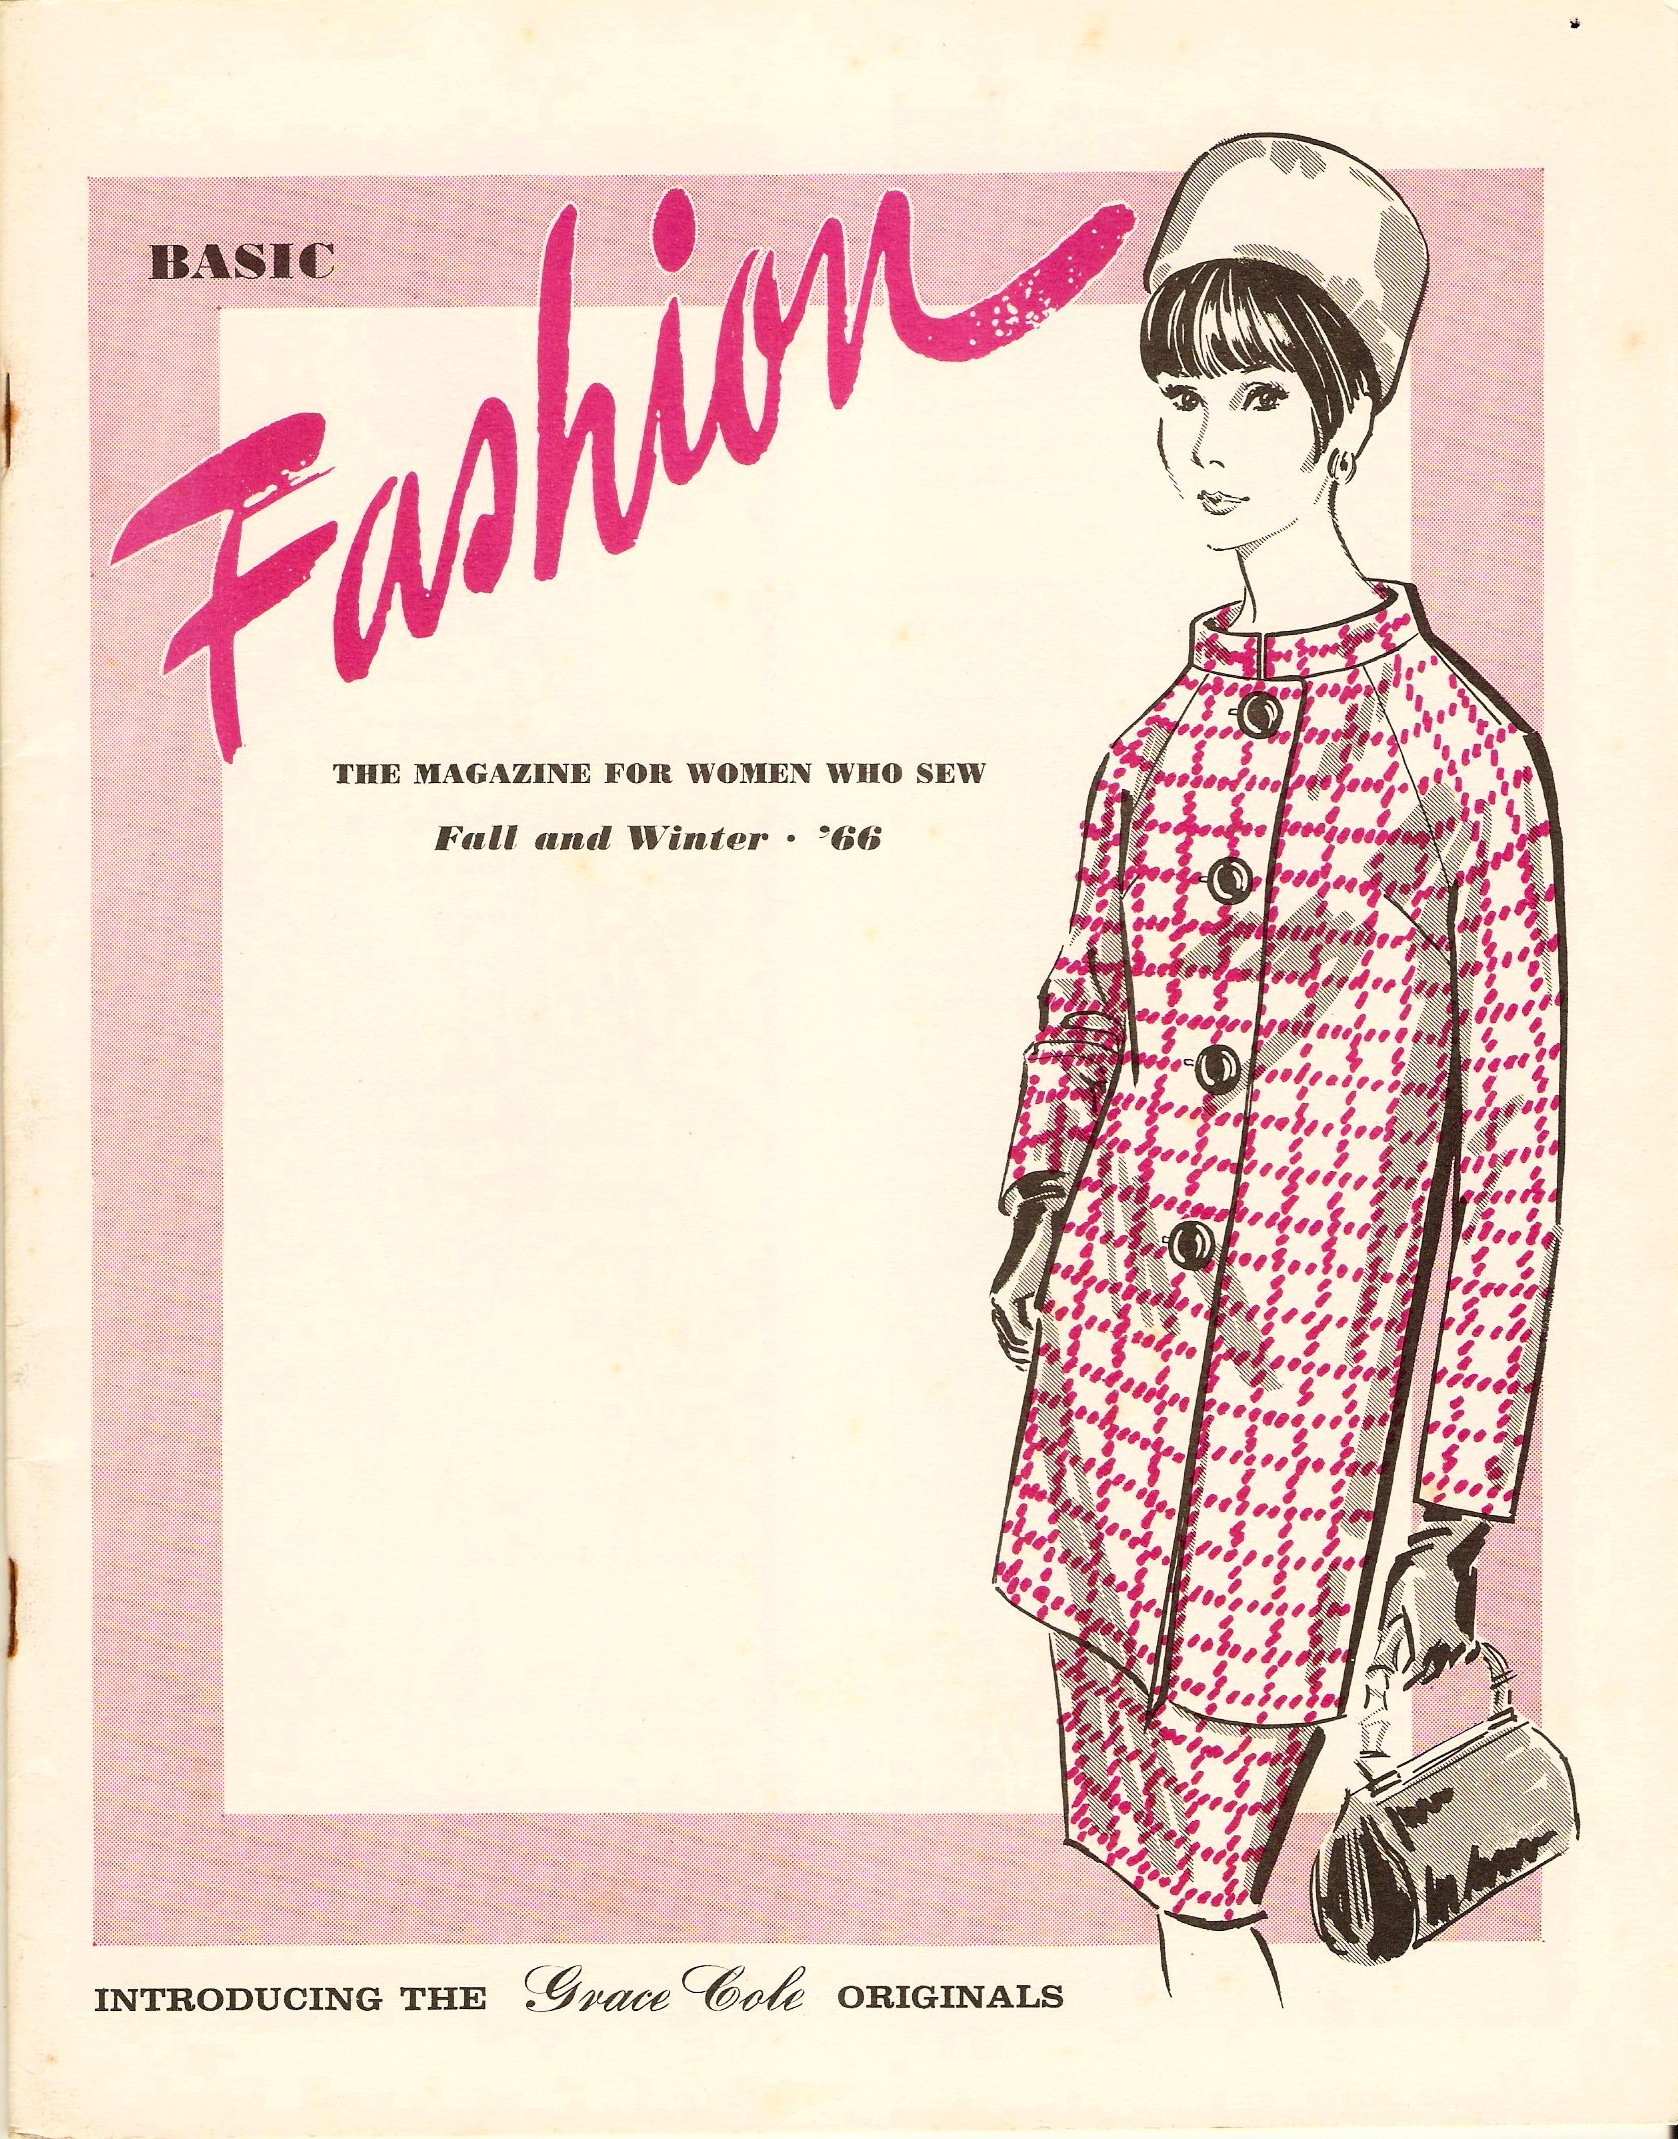 Basic Fashion Fall and Winter 1966